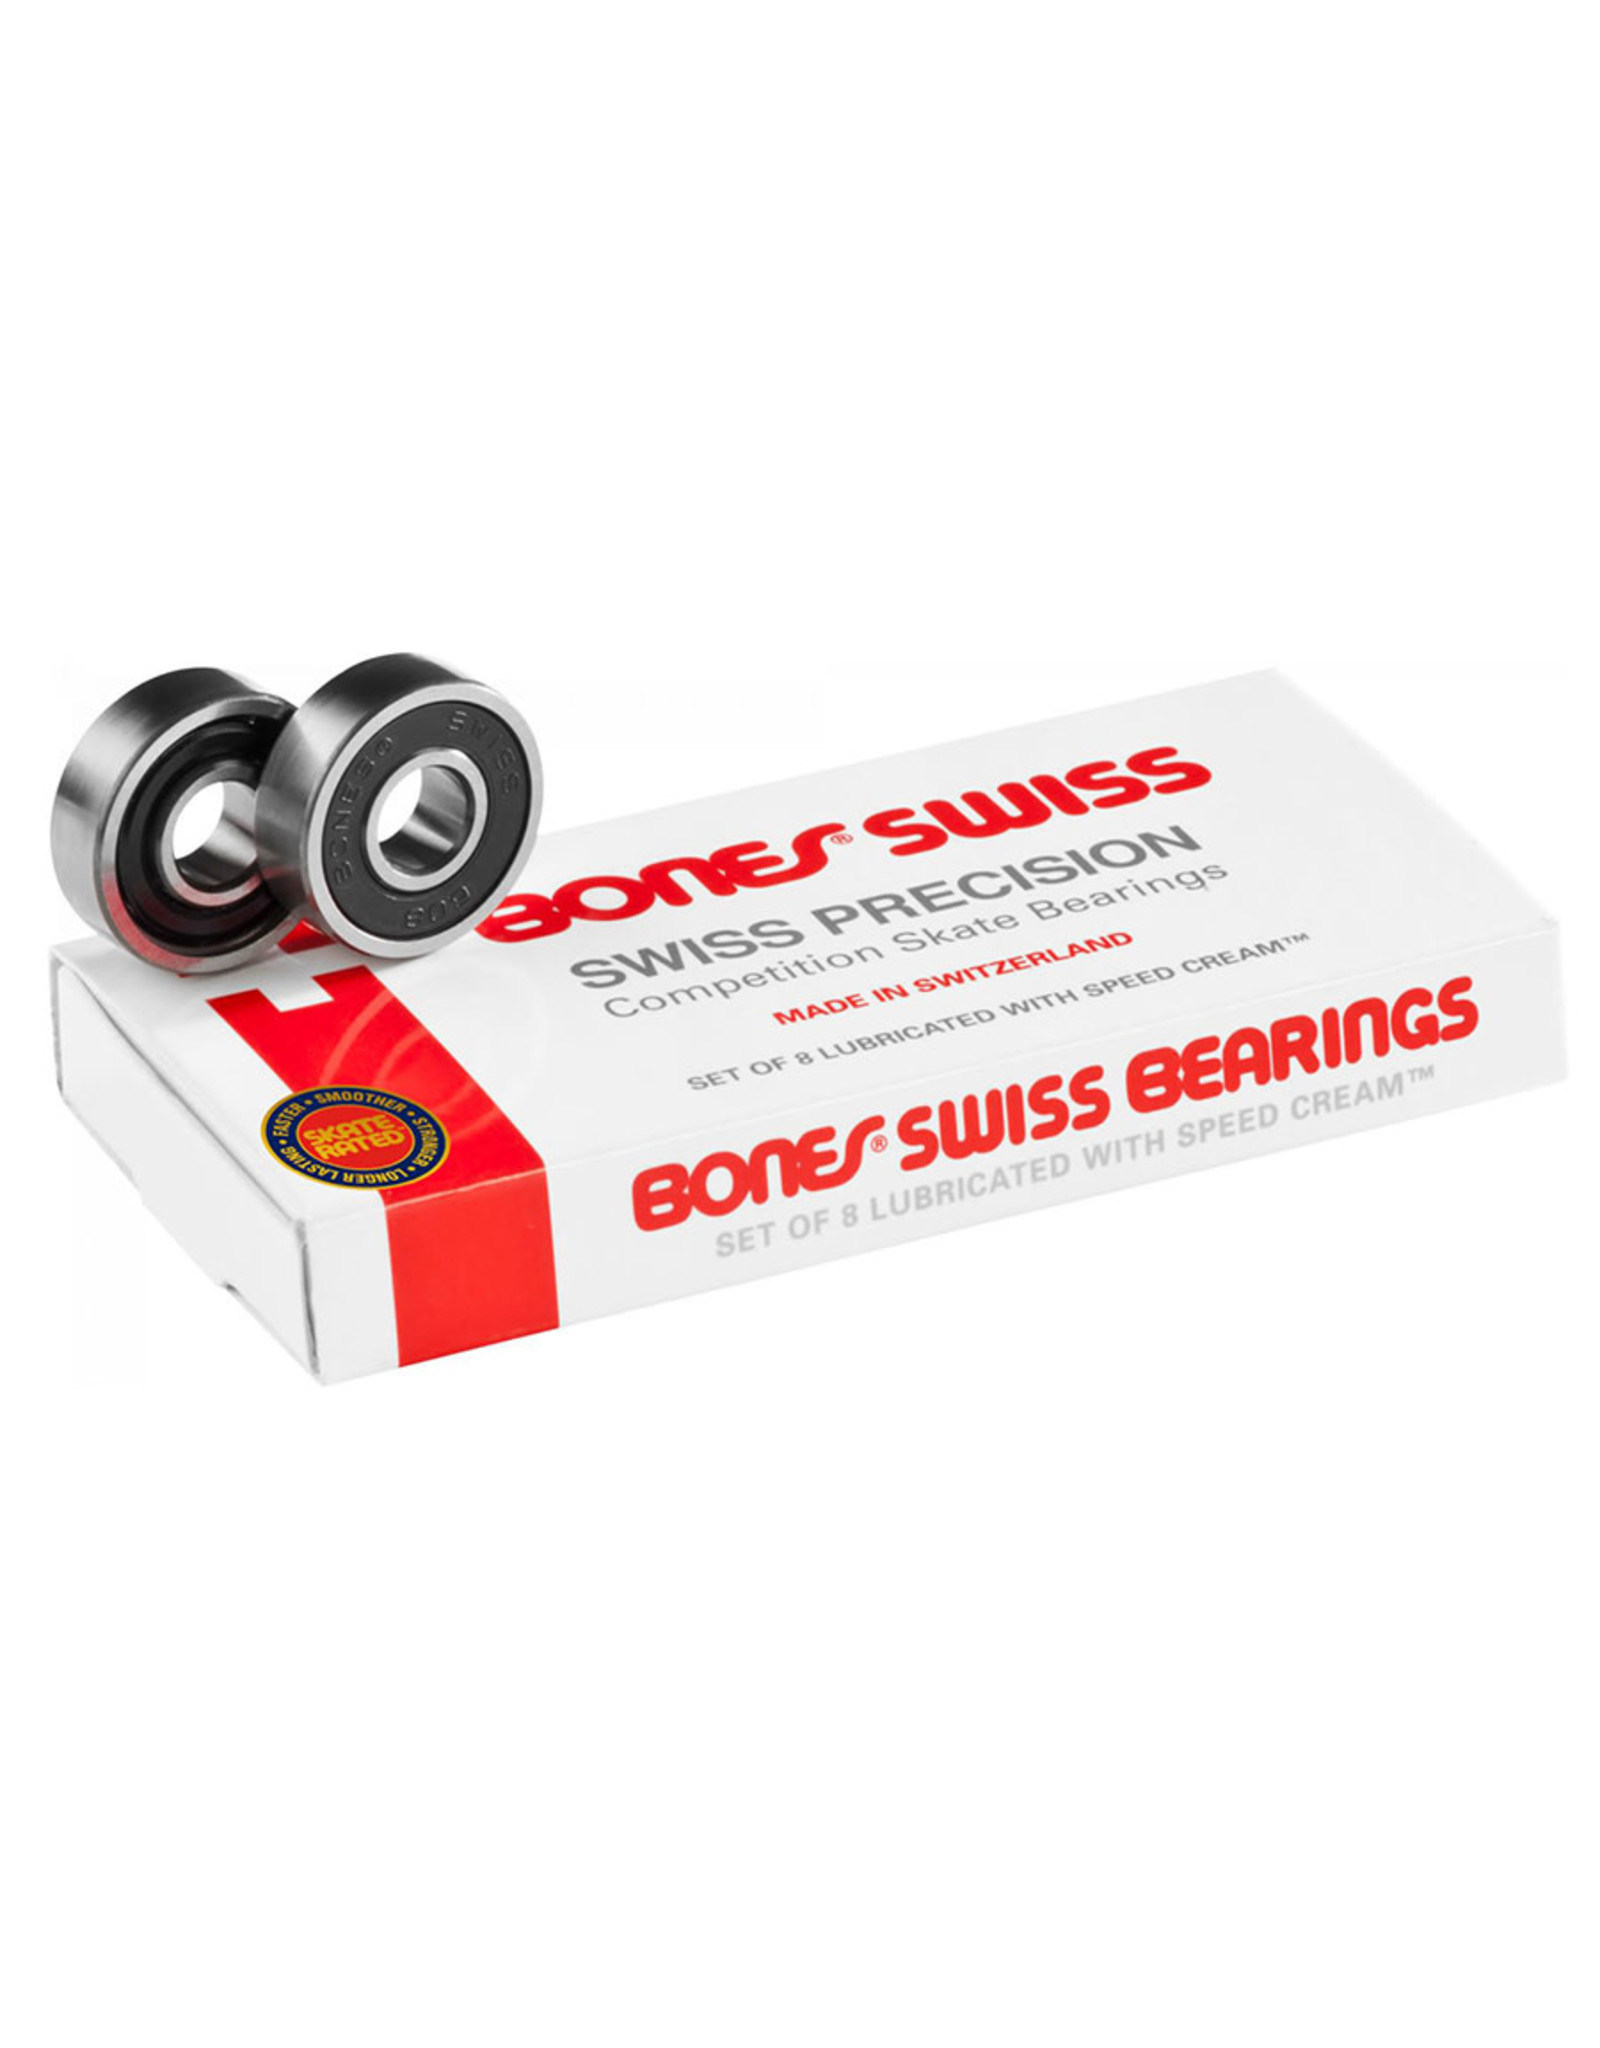 Bones Bones Bearings Swiss